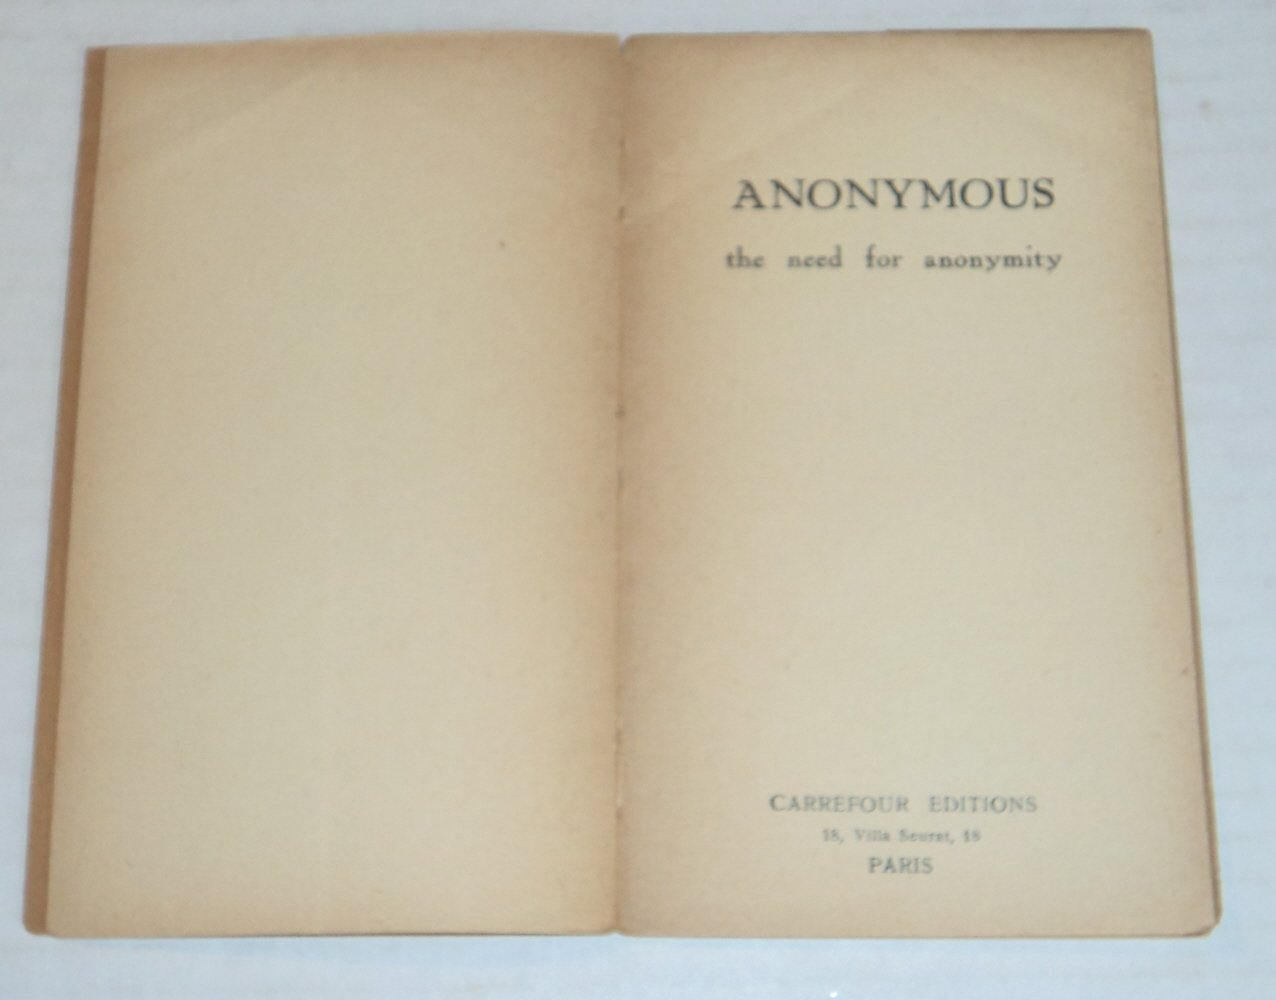 Amazon.com: ANONYMOUS the need for anonymity.: Michael ...